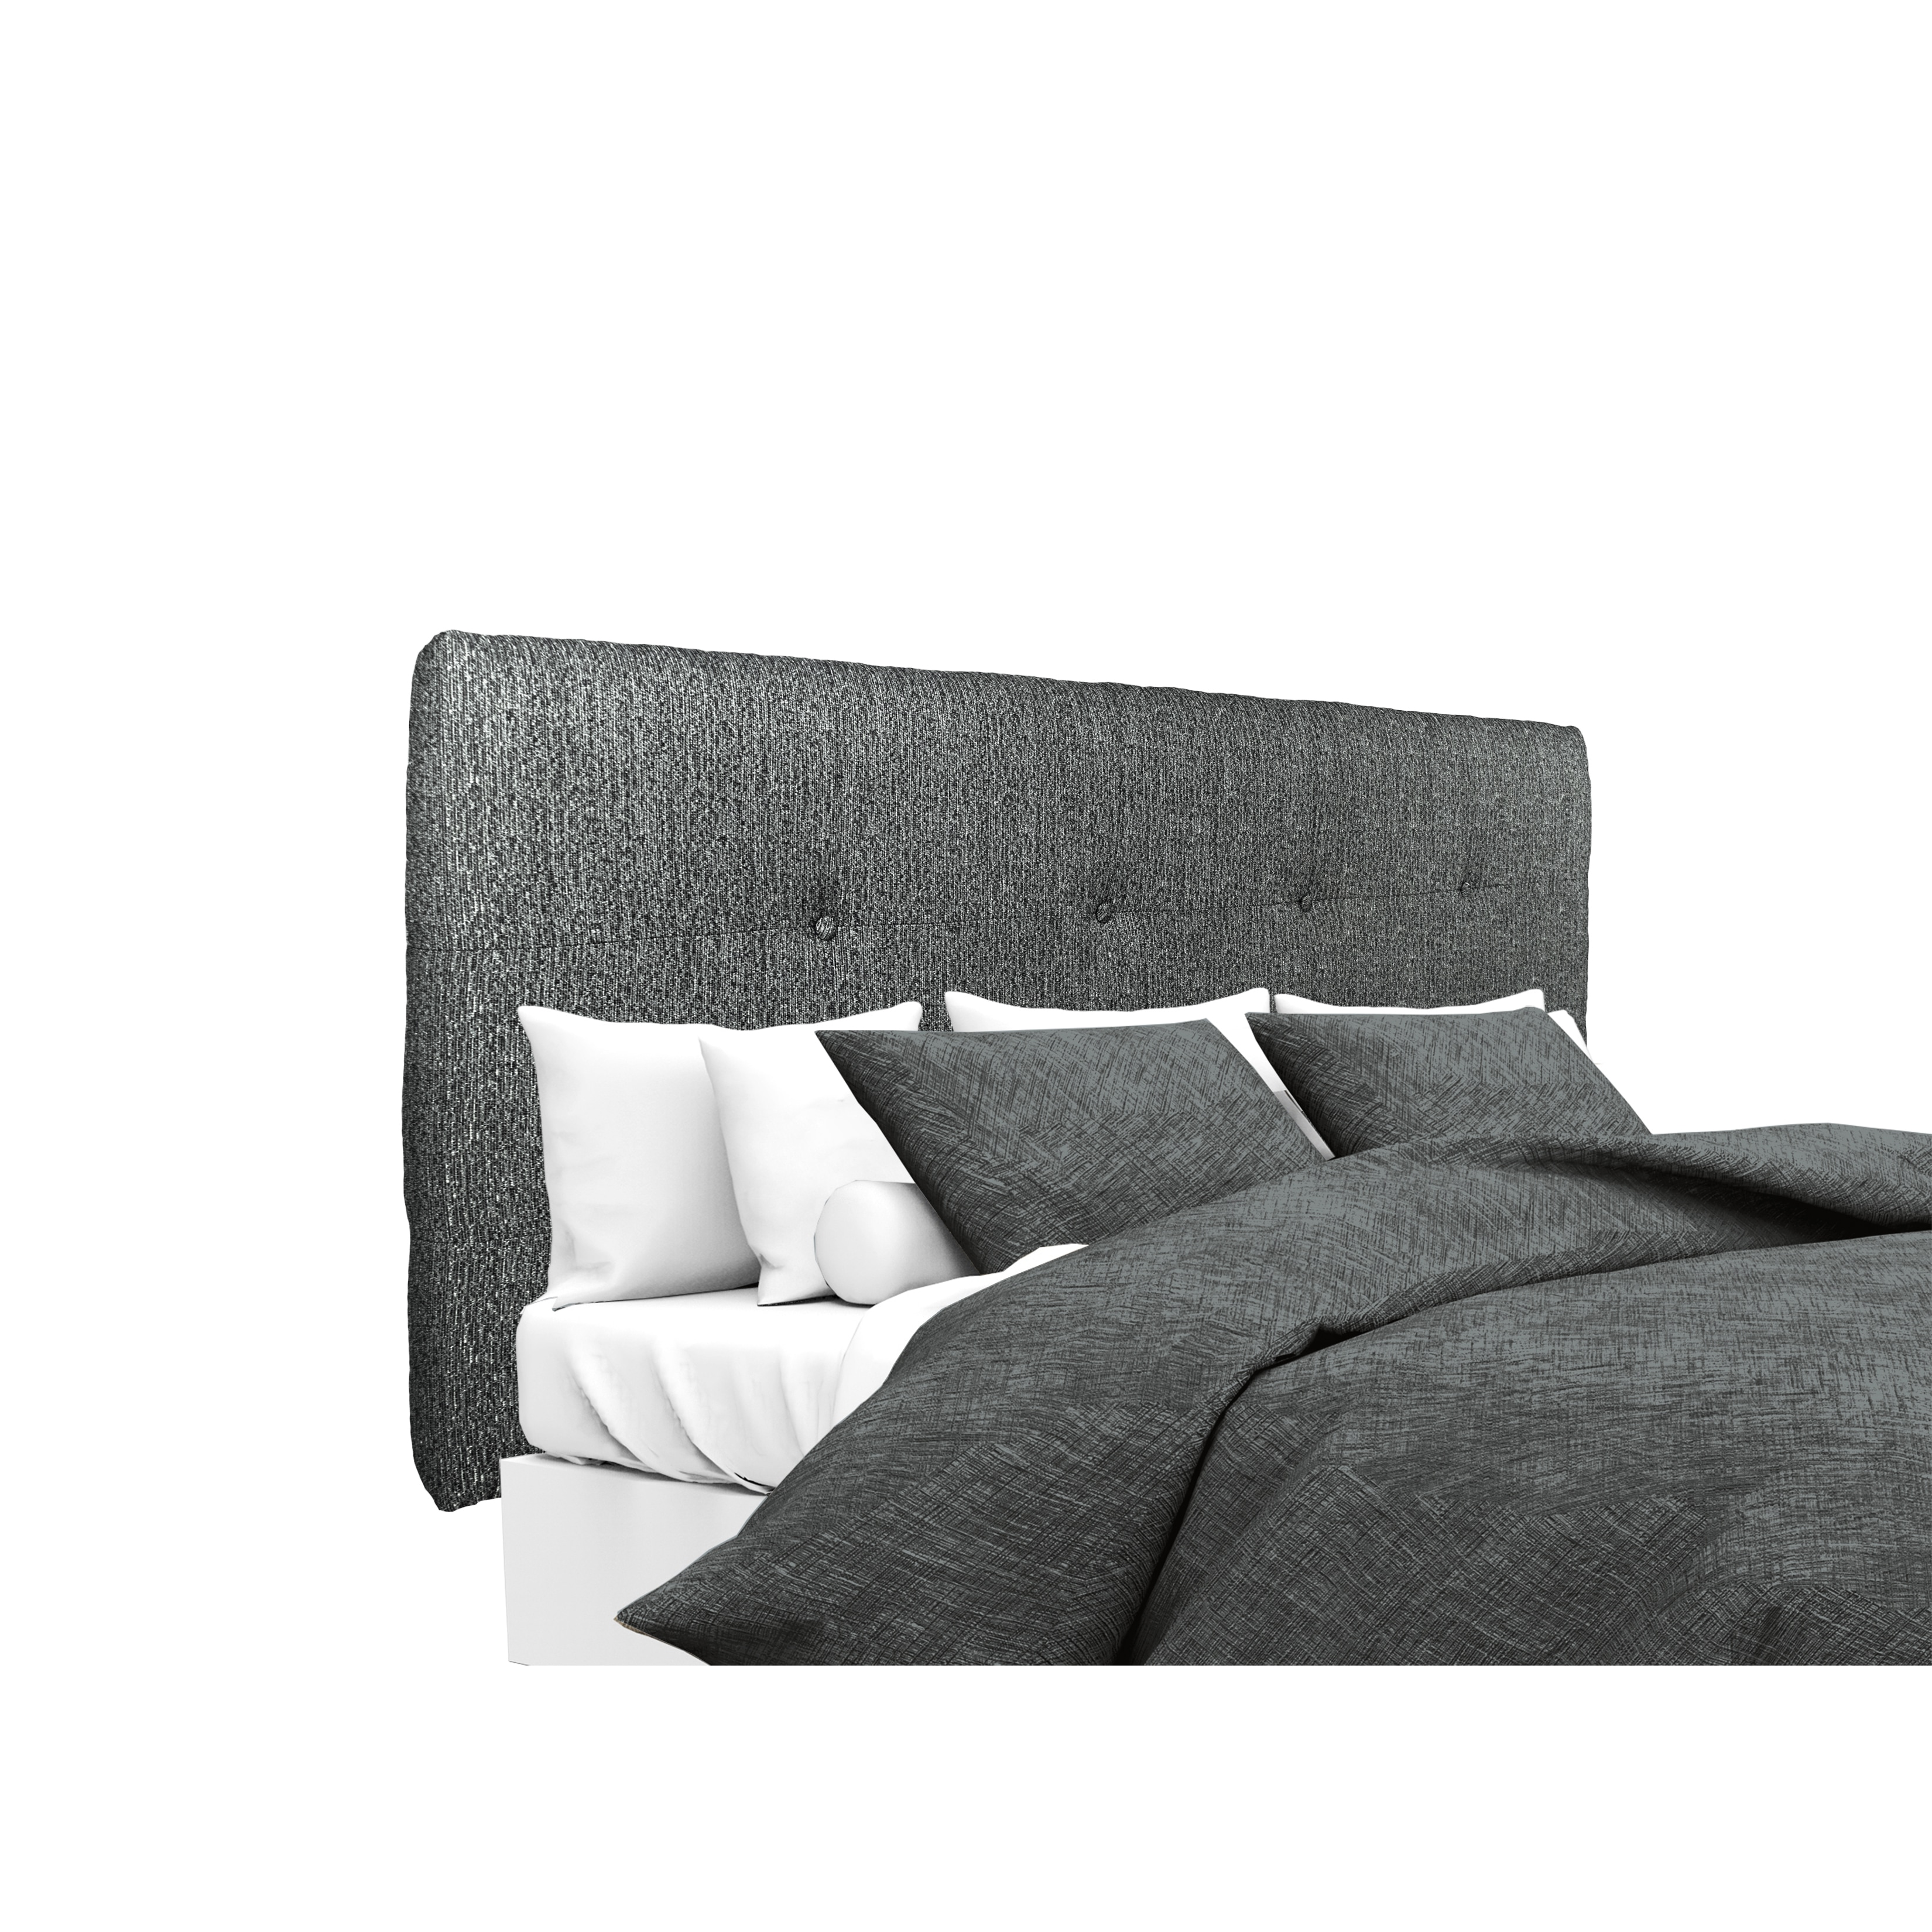 Details about mjl furniture ali button tufted text2 olivia charcoal upholstered headboard